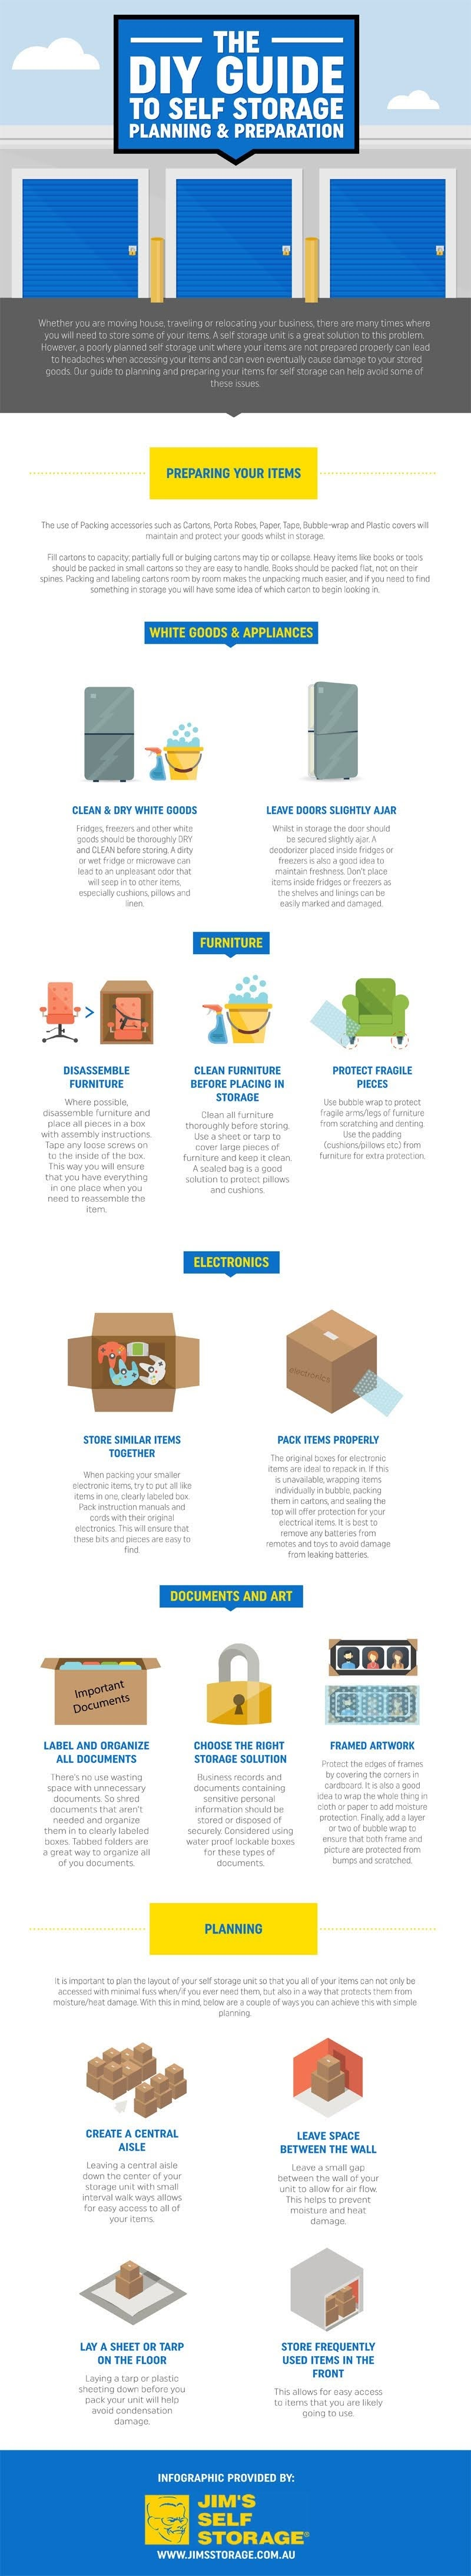 The DIY Guide to Self Storage Planning & Preparation #infographic